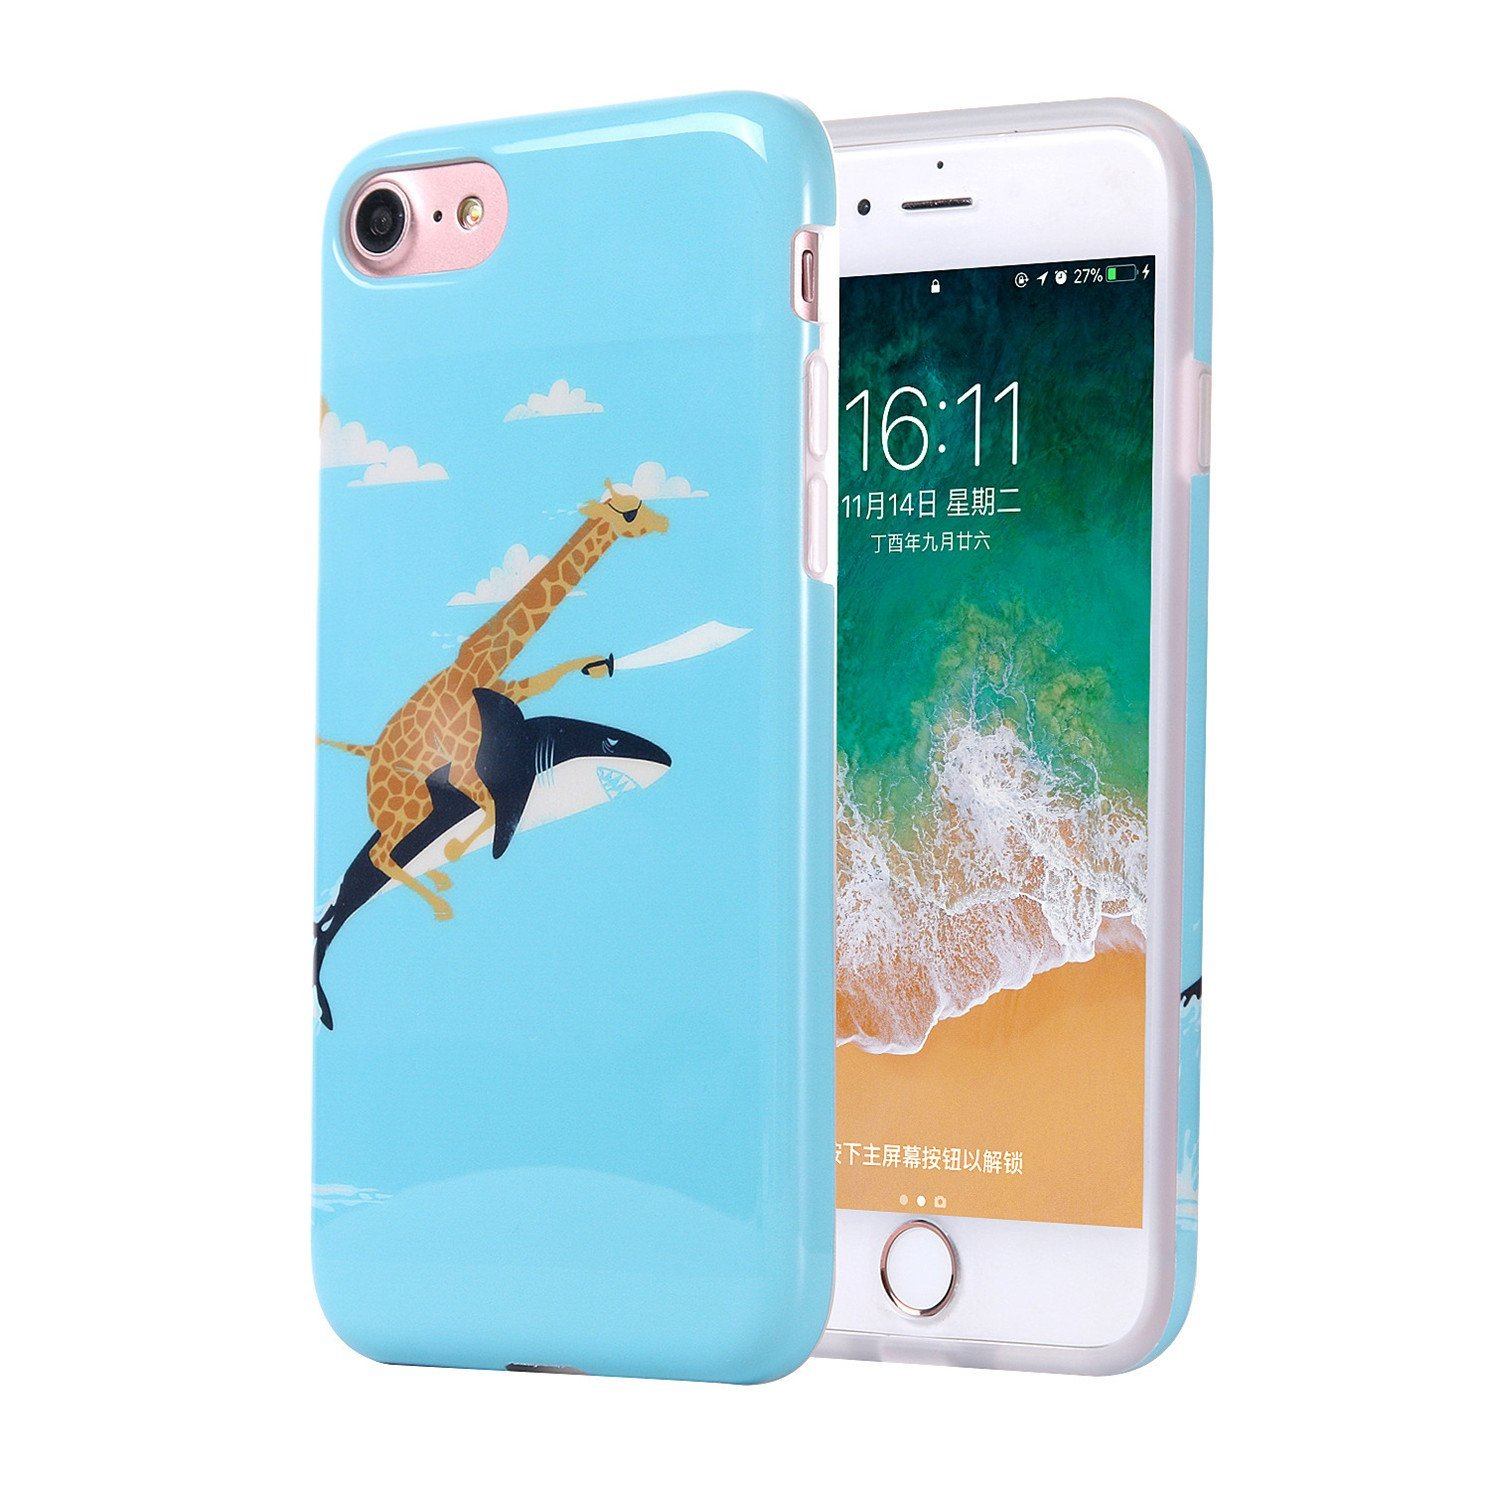 iPhone 6 Case, iPhone 6s Case Cute for Girls, Best Protective Slim Shockproof Glossy Soft Flexible Clear Rubber TPU Silicone Cover Phone Case for Apple iPhone 6 / 6s (Giraffe Riding Shark)